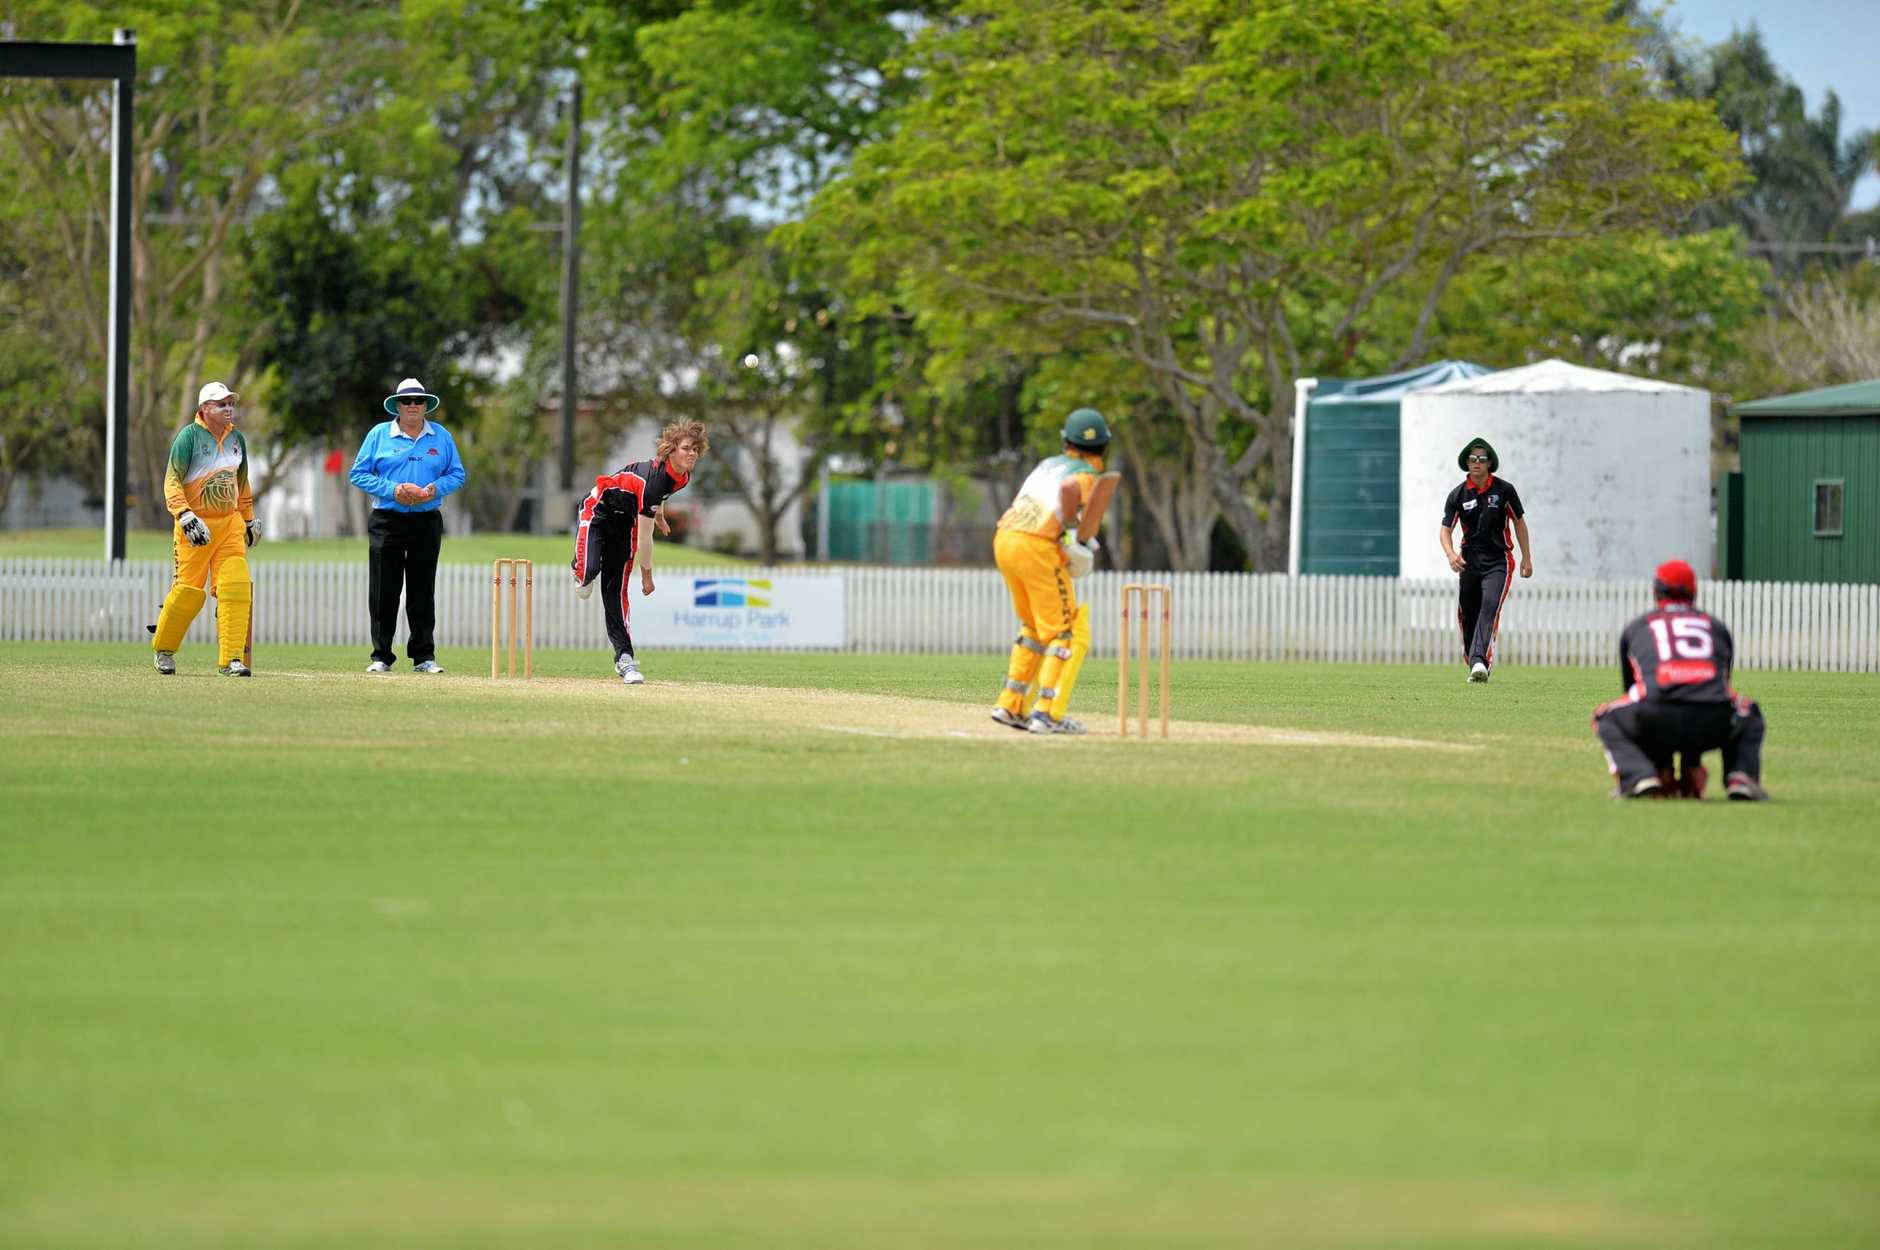 Lane Kohler sends down a delivery as Norths took on Pioneer Valley in Mackay Senior Cricket on Saturday